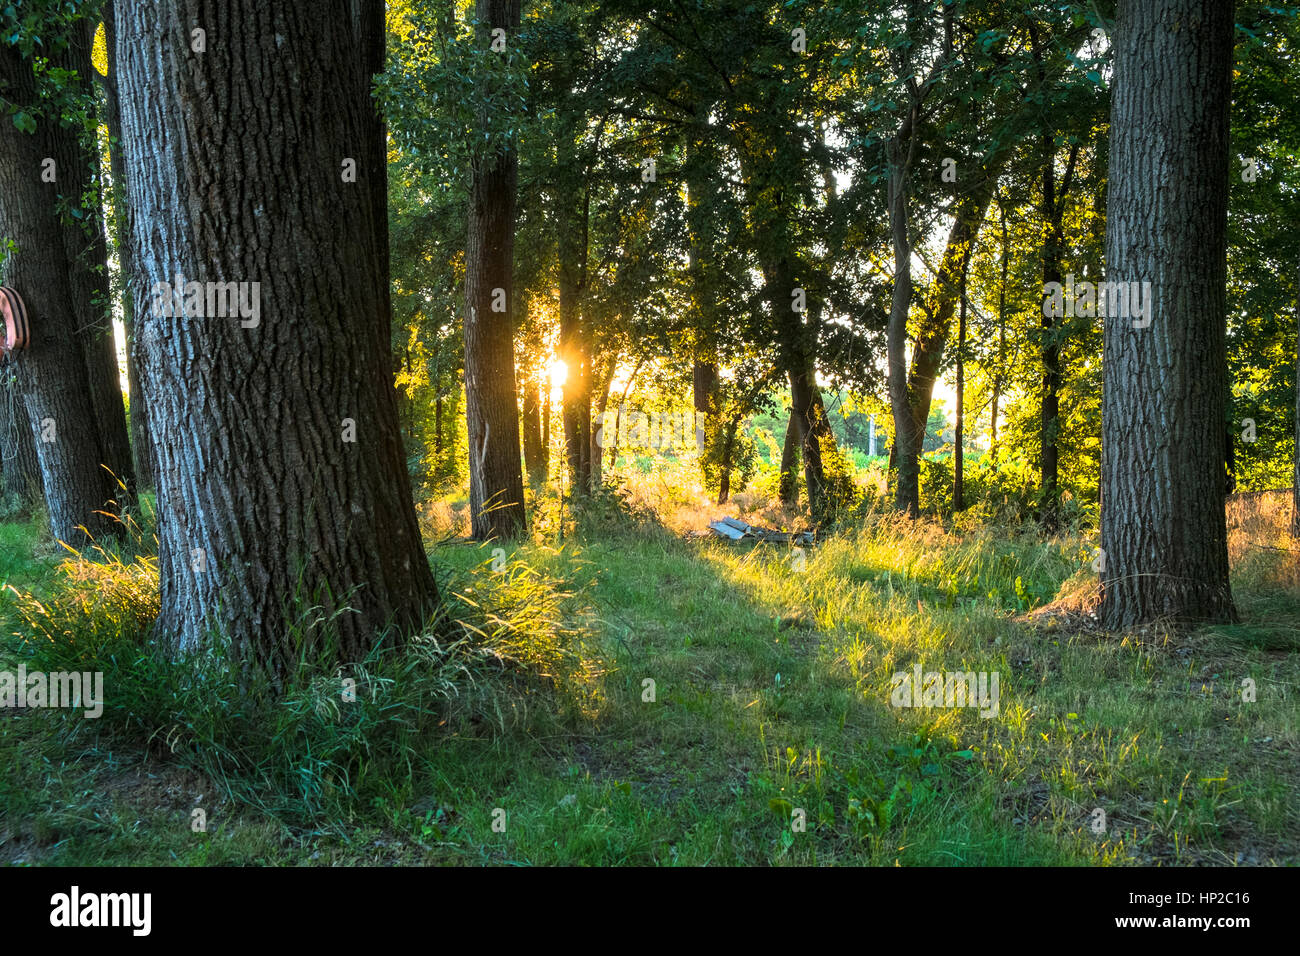 Spring forest in sunset - Stock Image